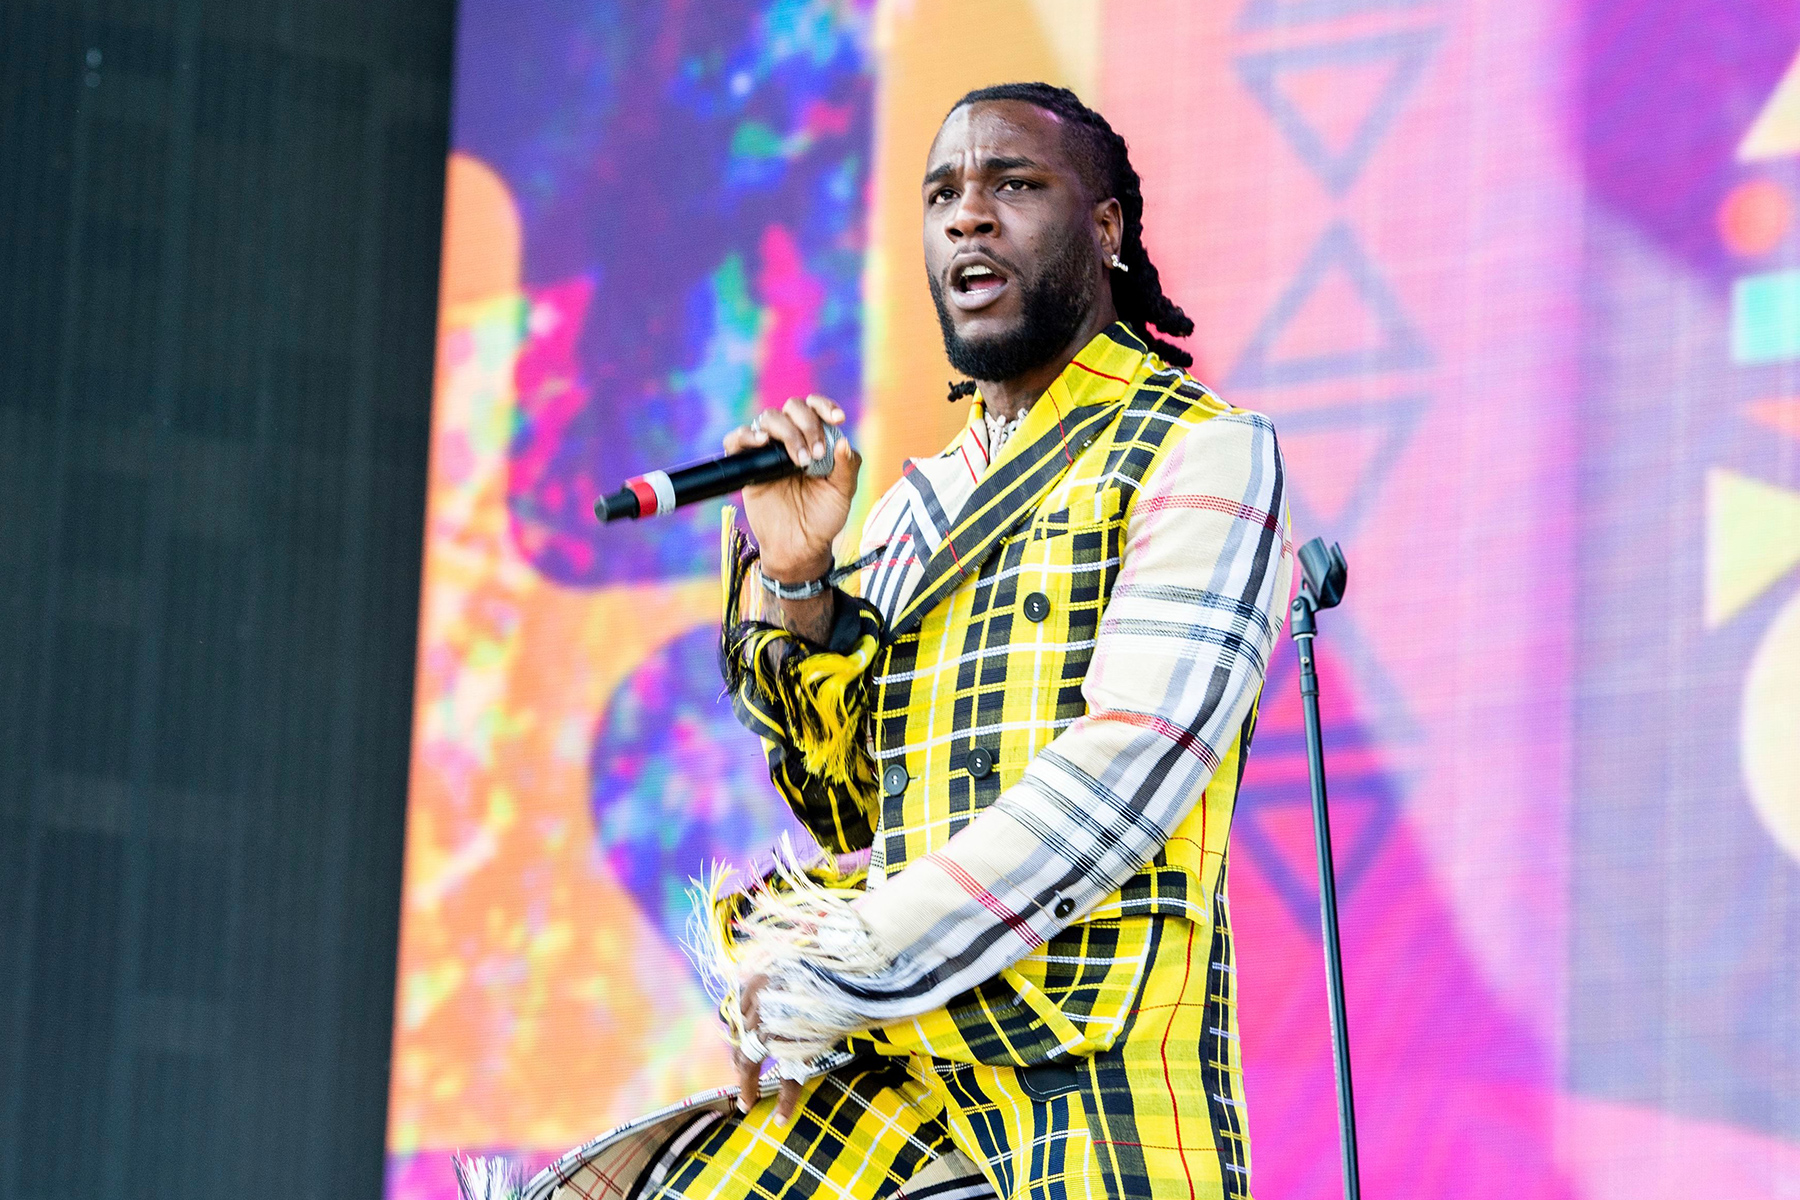 Burna Boy reacts to BET award - 'Africa must matter for Black lives to matter'